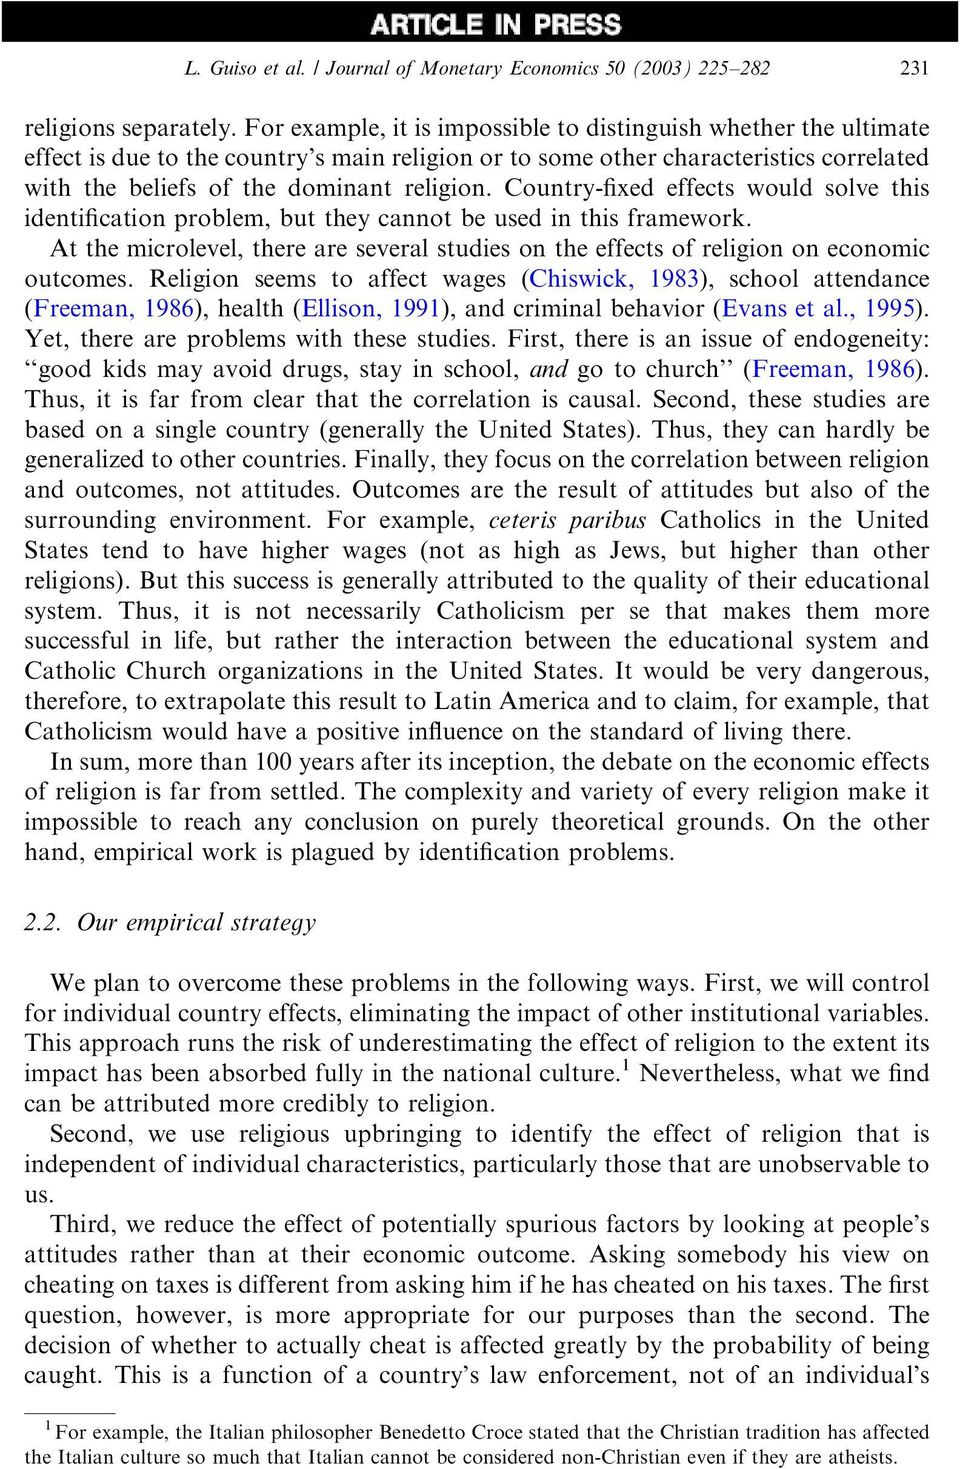 Country-fixedeffects wouldsolve this identification problem, but they cannot be used in this framework. At the microlevel, there are several studies on the effects of religion on economic outcomes.